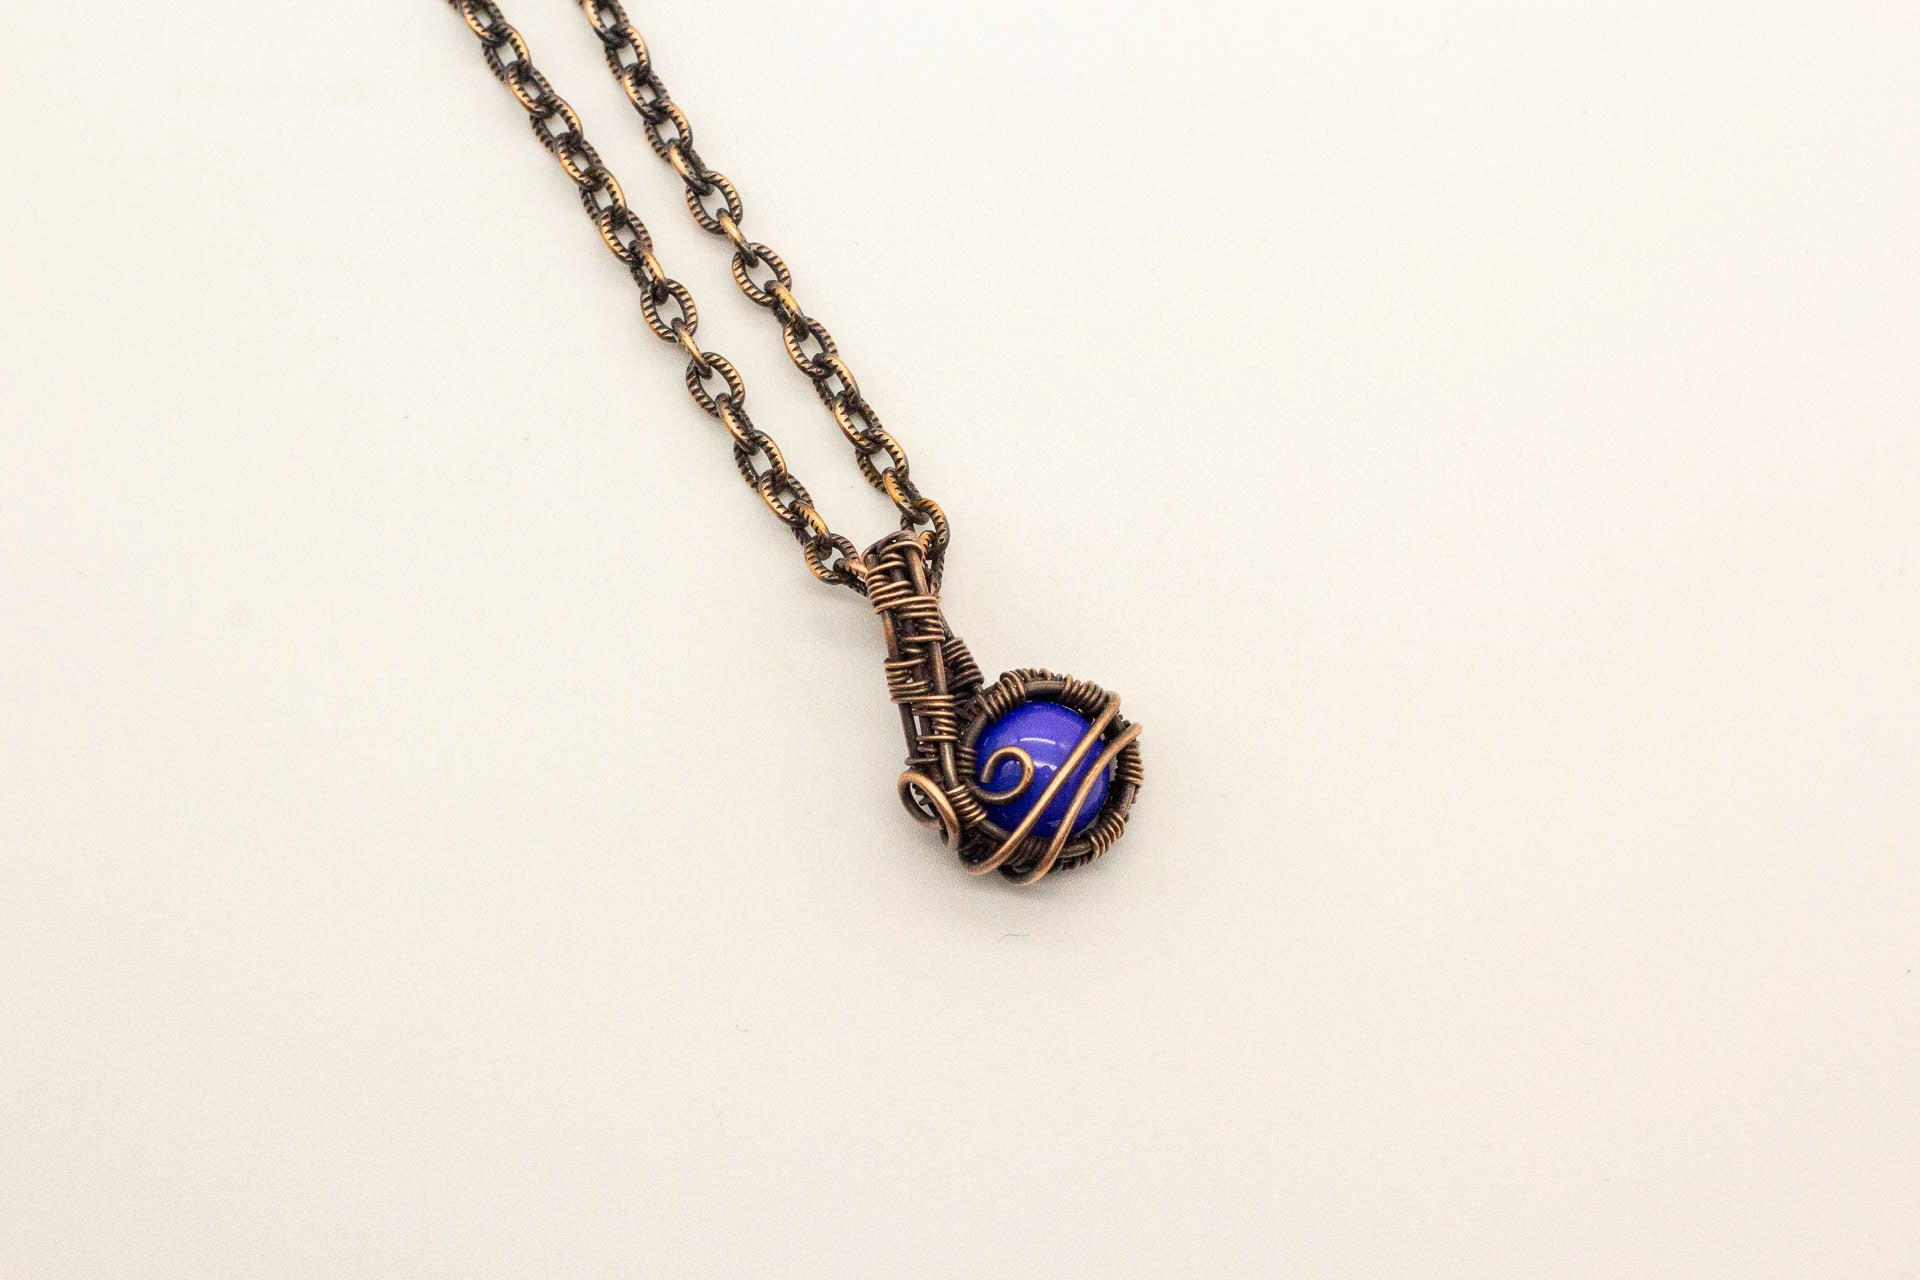 blue-fused-glass-mini-pendant-copper-wire-wrapping-nymph-in-the-woods-jewelry